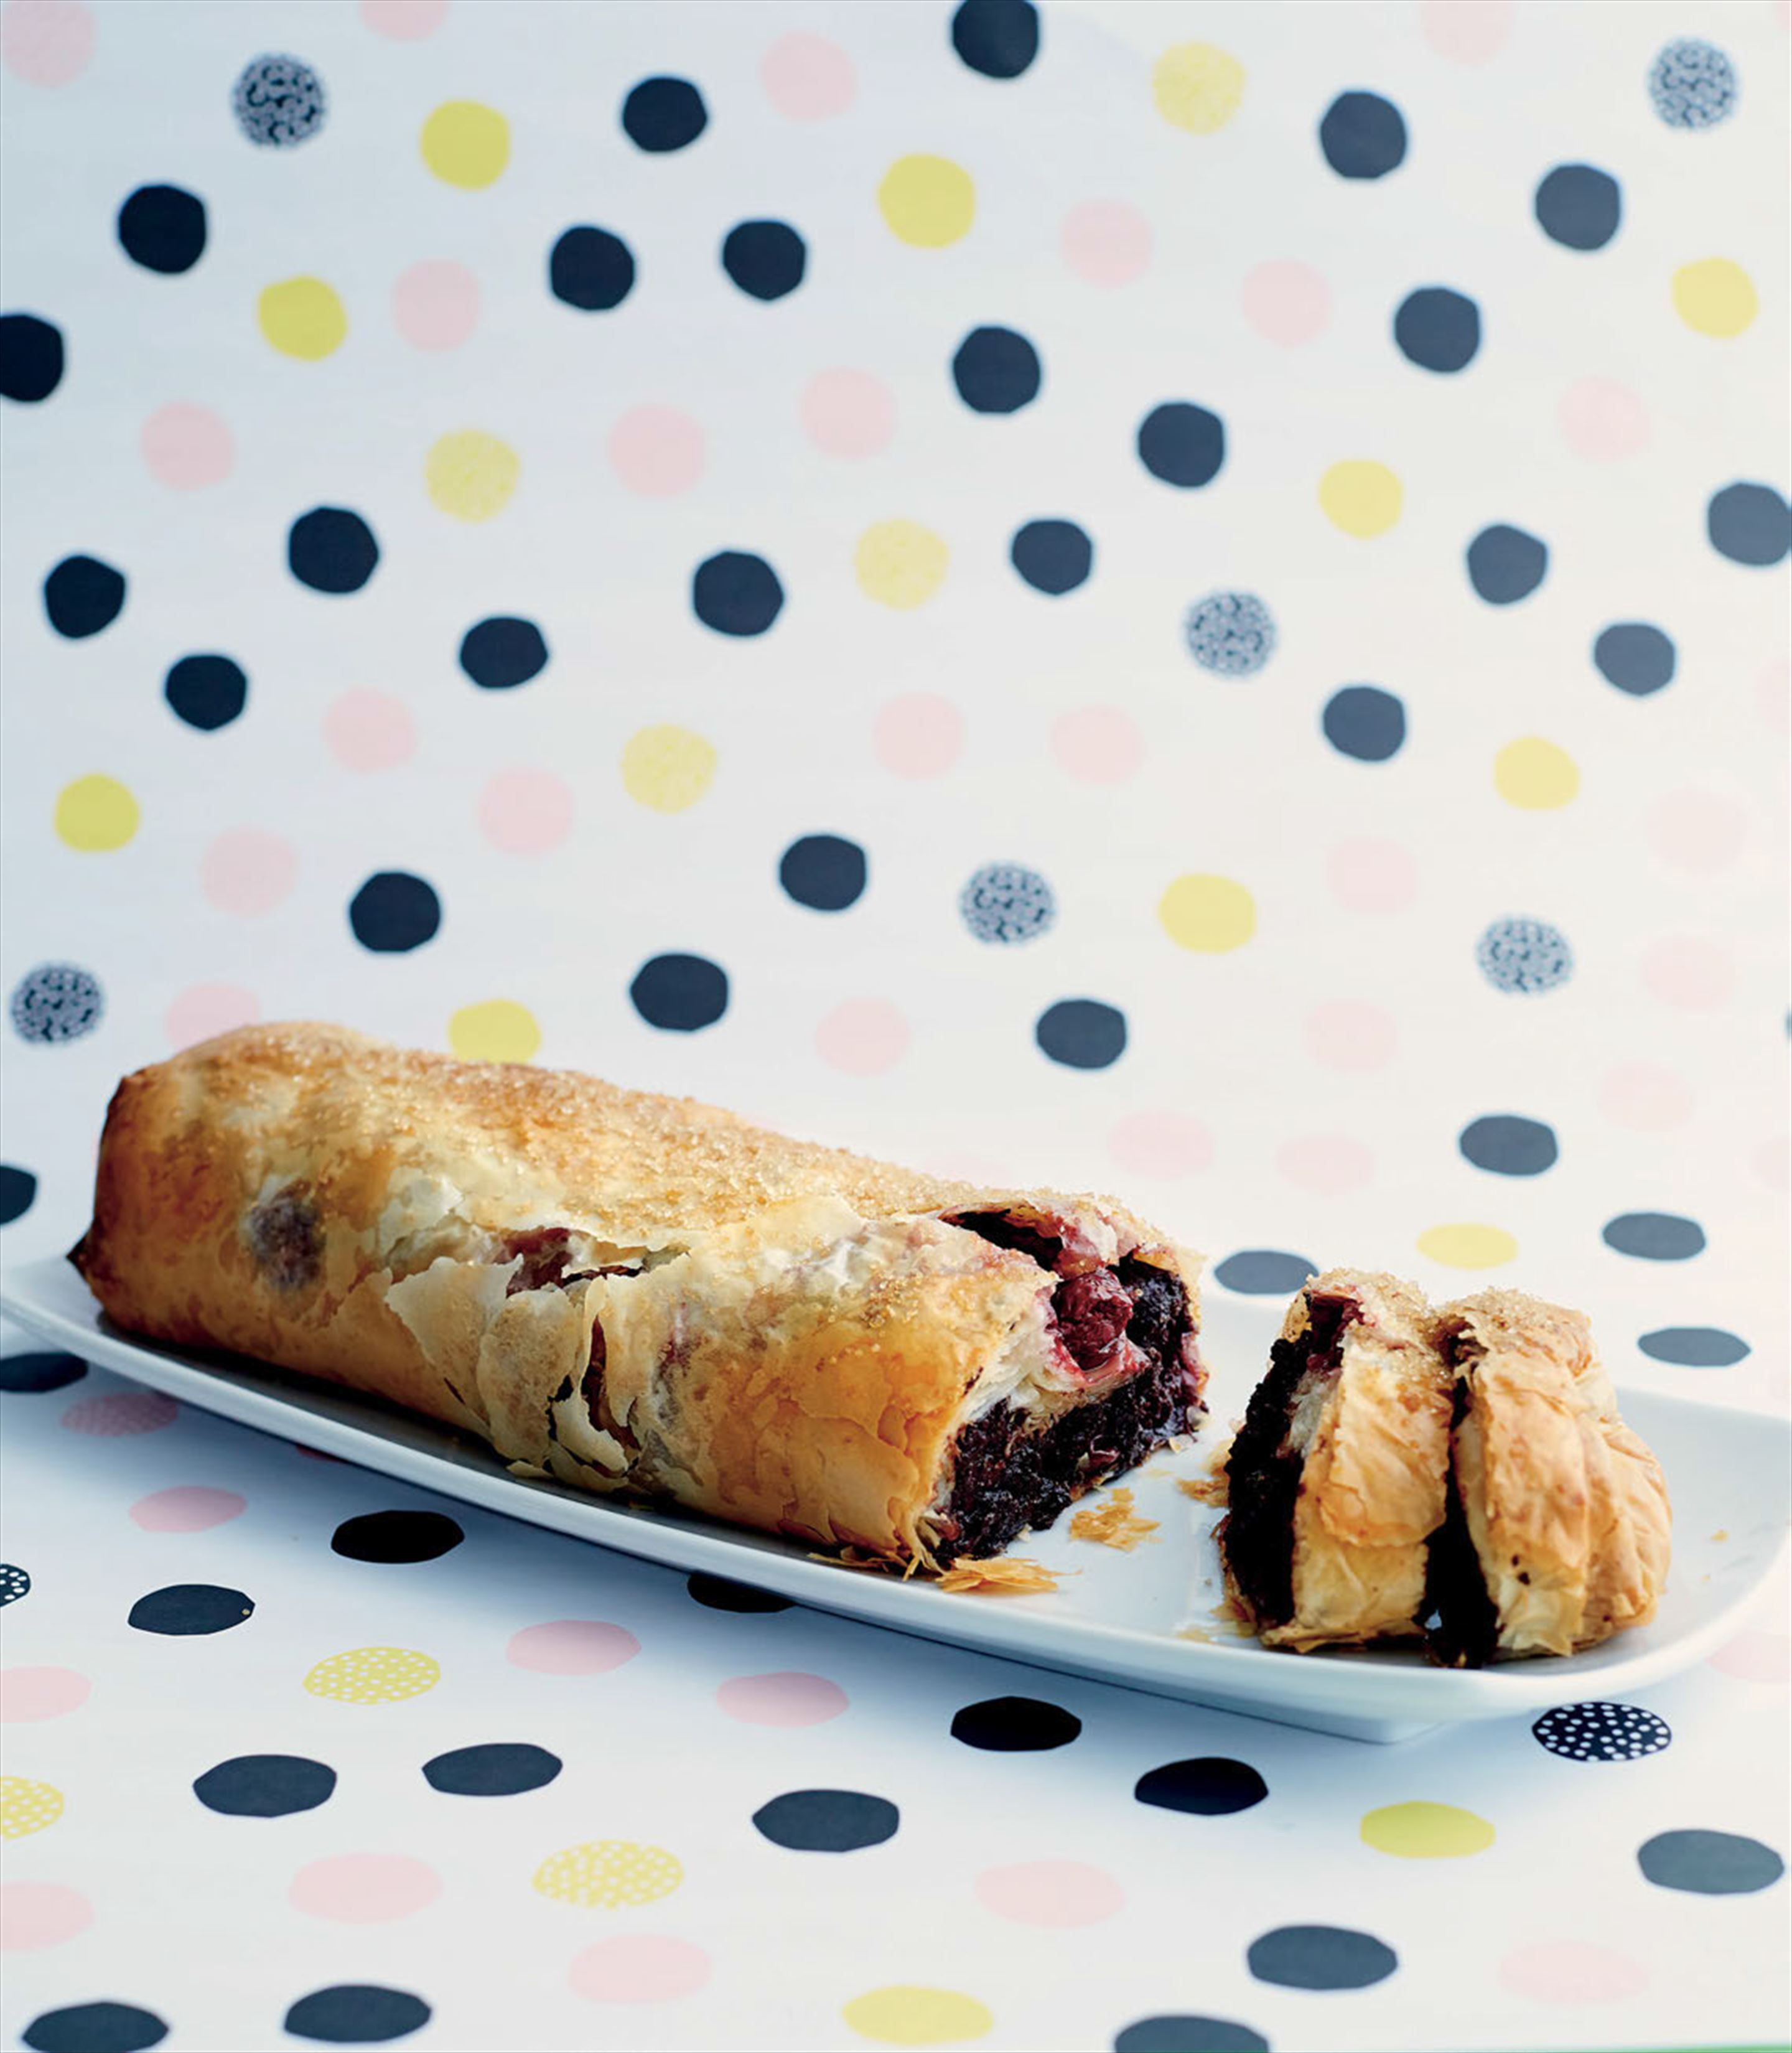 Cherry brownie strudel